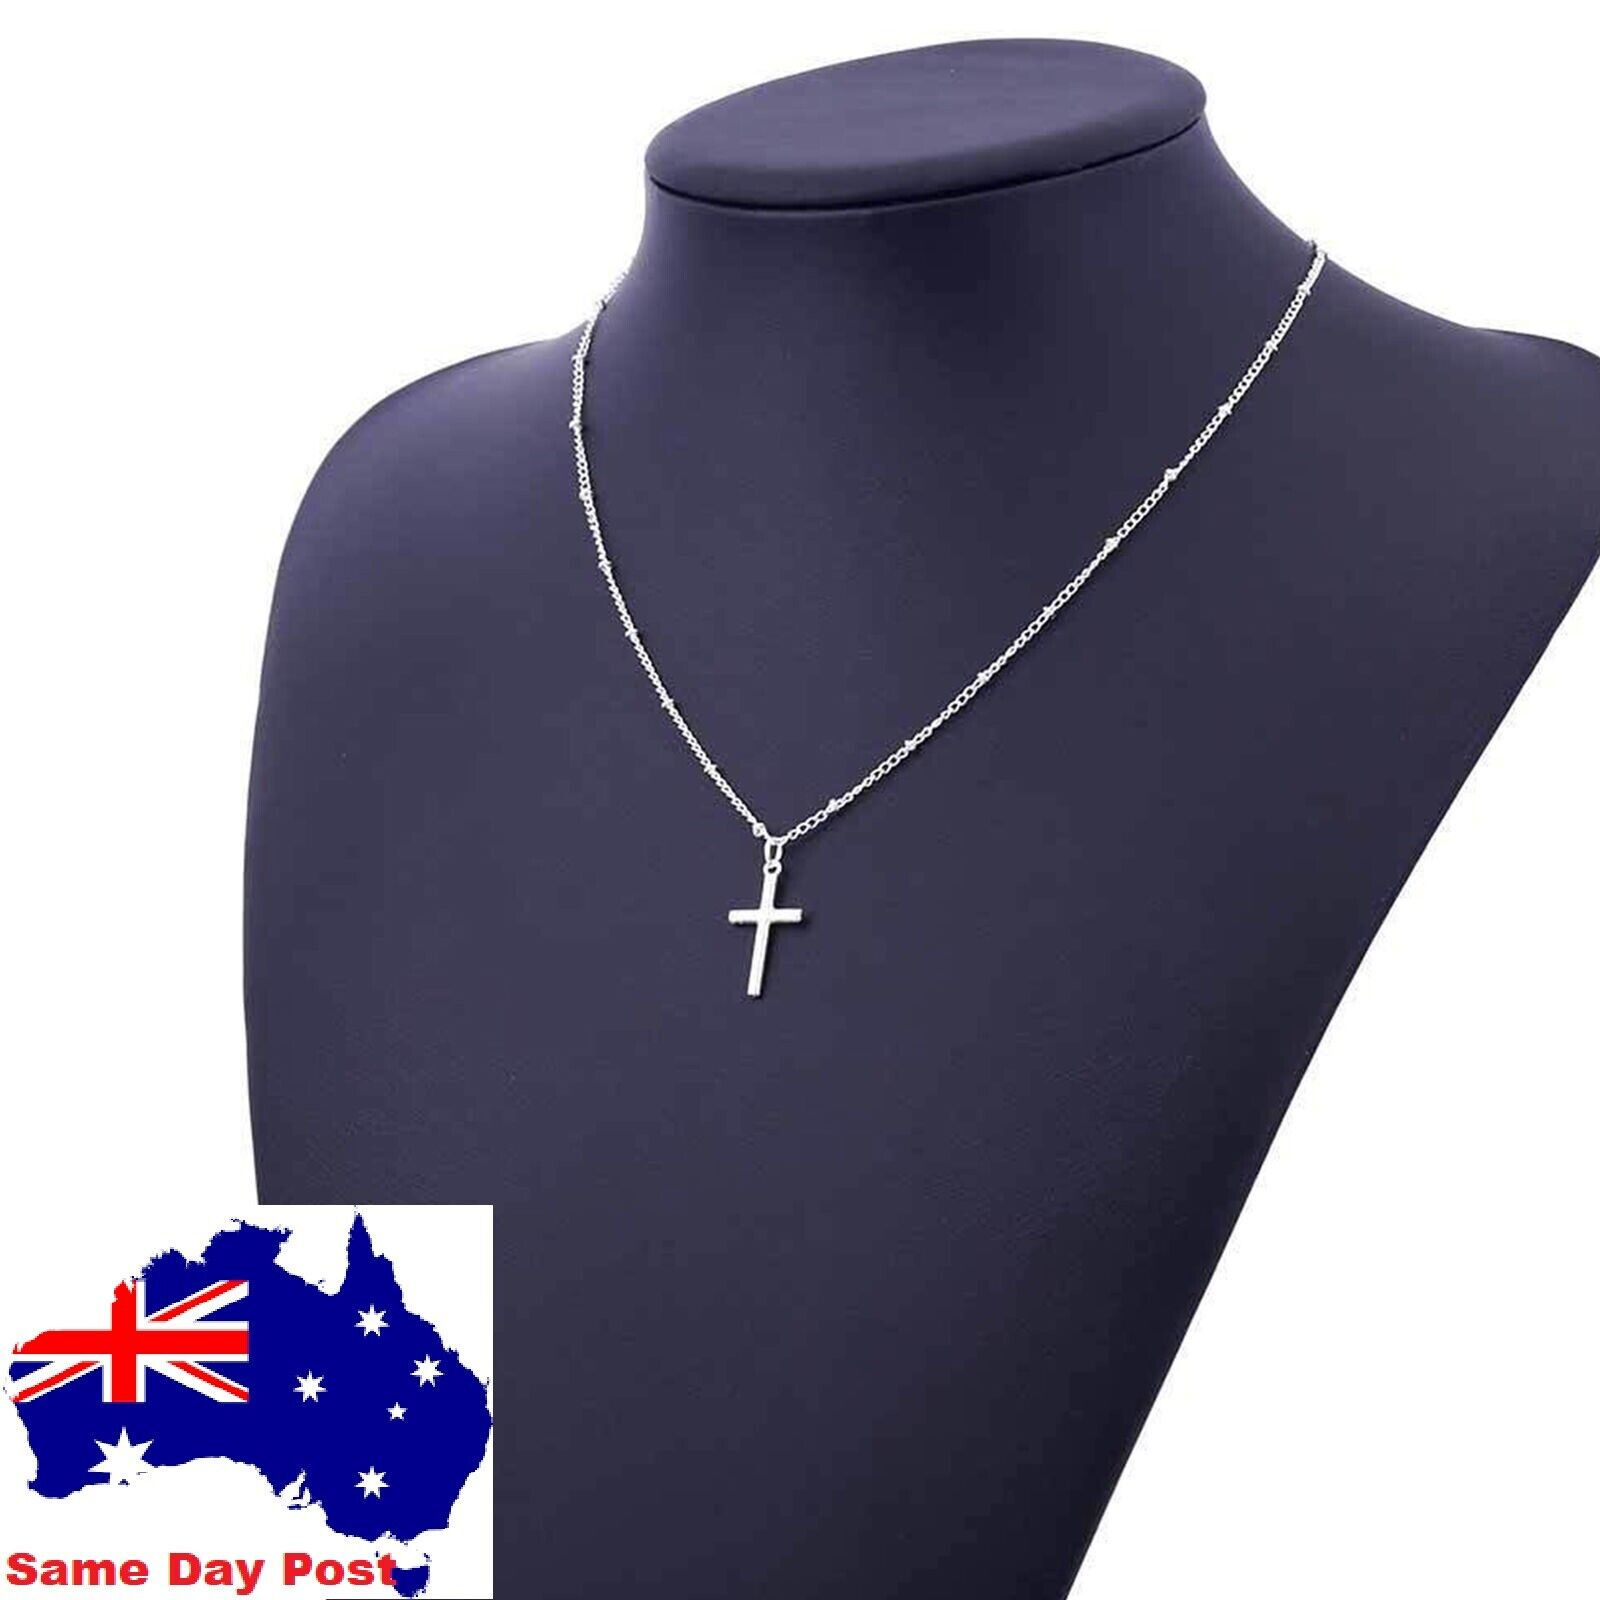 Jewellery - NEW  Cross Pendant Charm Gold or Silver Necklace Chain Women Fashion Jewellery